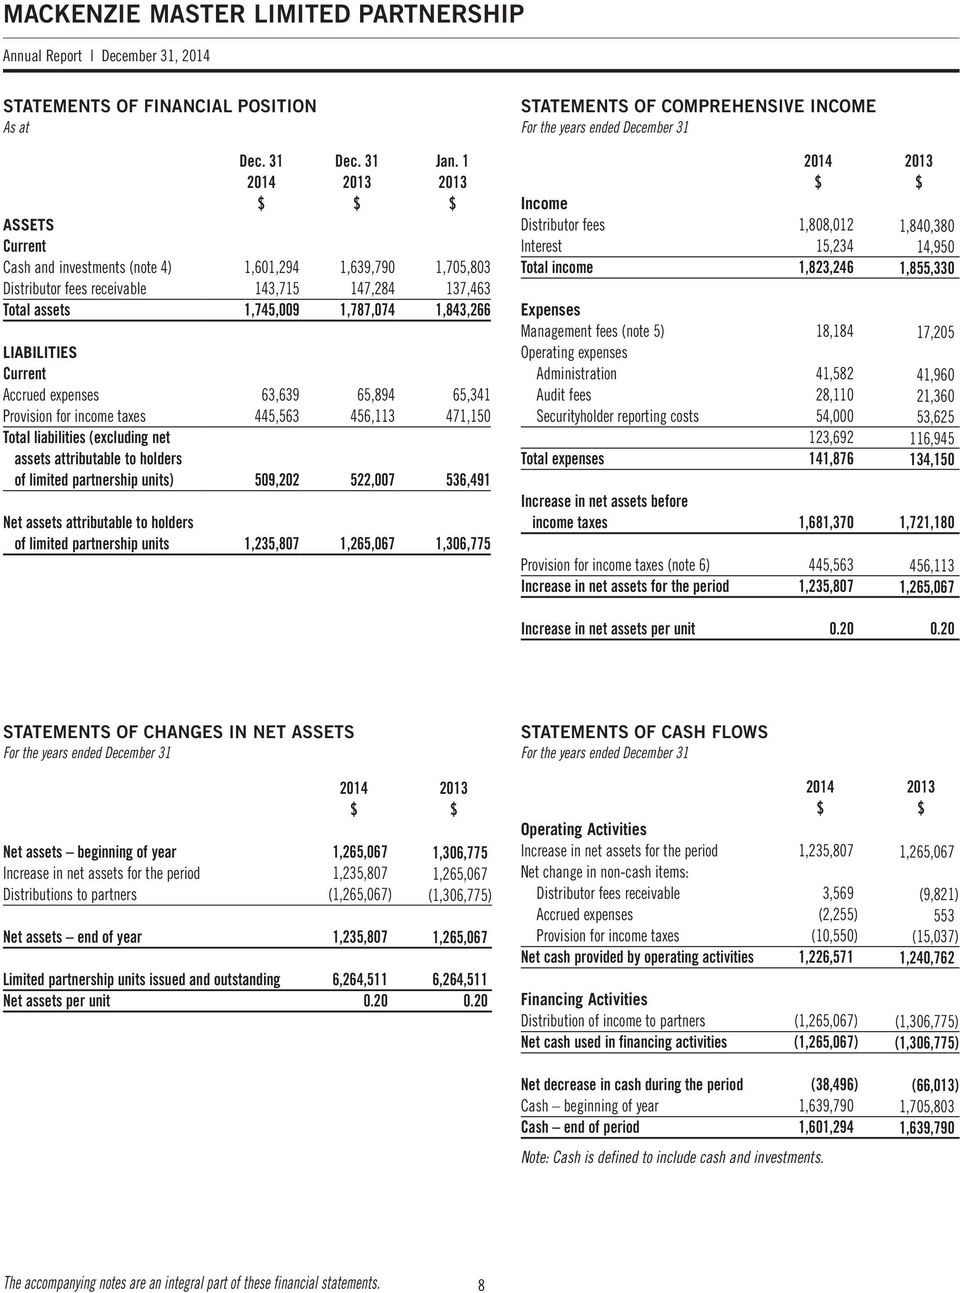 LIABILITIES Current Accrued expenses 63,639 65,894 65,341 Provision for income taxes 445,563 456,113 471,150 Total liabilities (excluding net assets attributable to holders of limited partnership